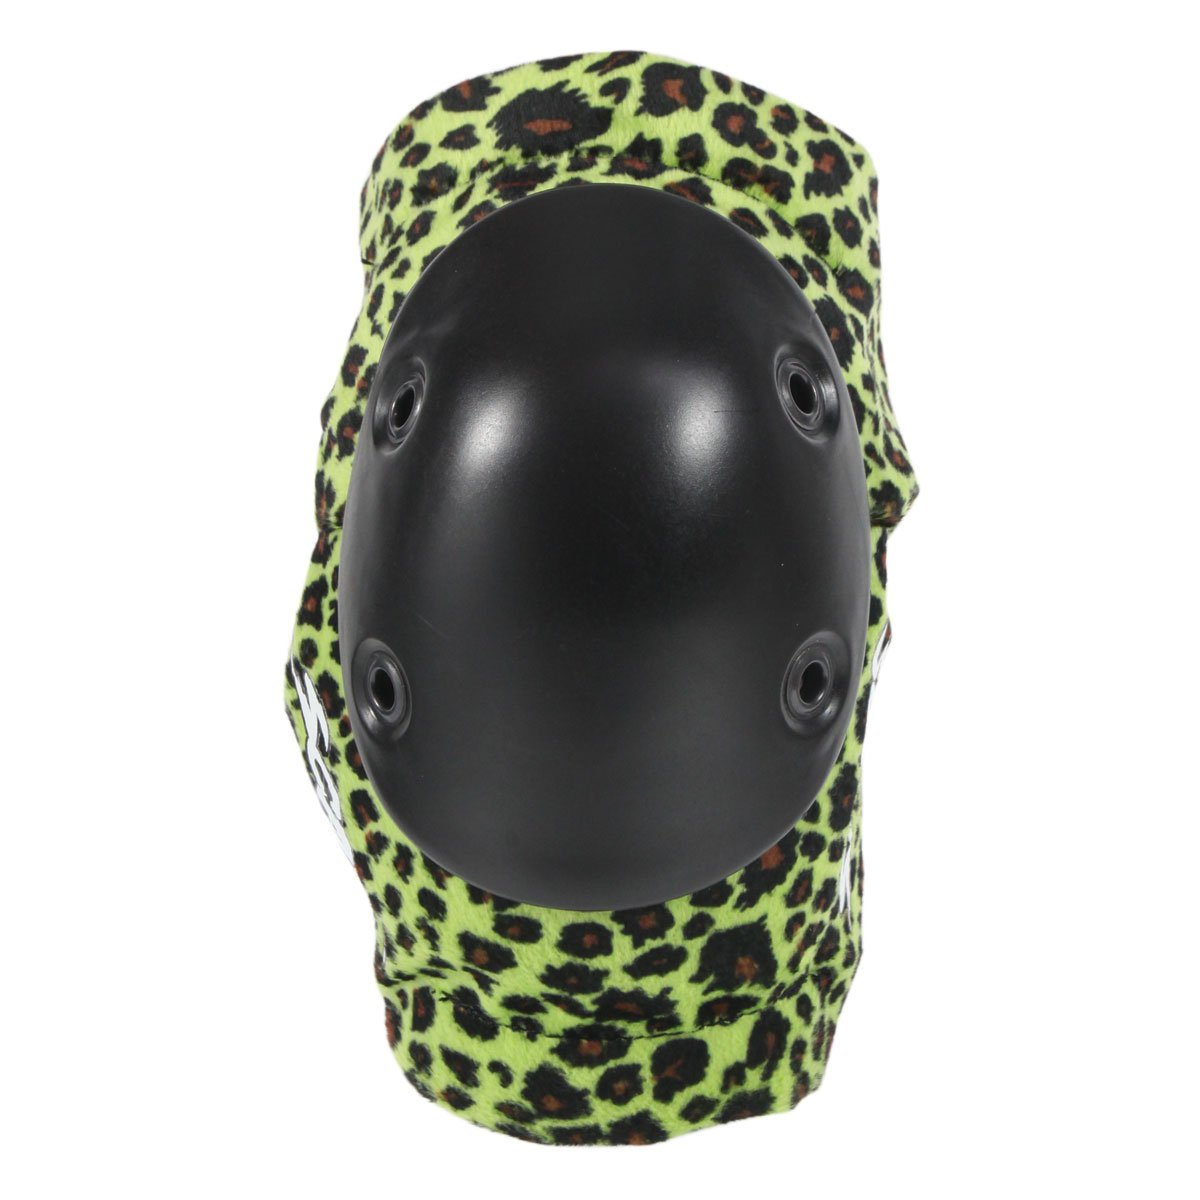 Smith Safety Gear Elite Leopard Elbow Pads, Green, X-Small